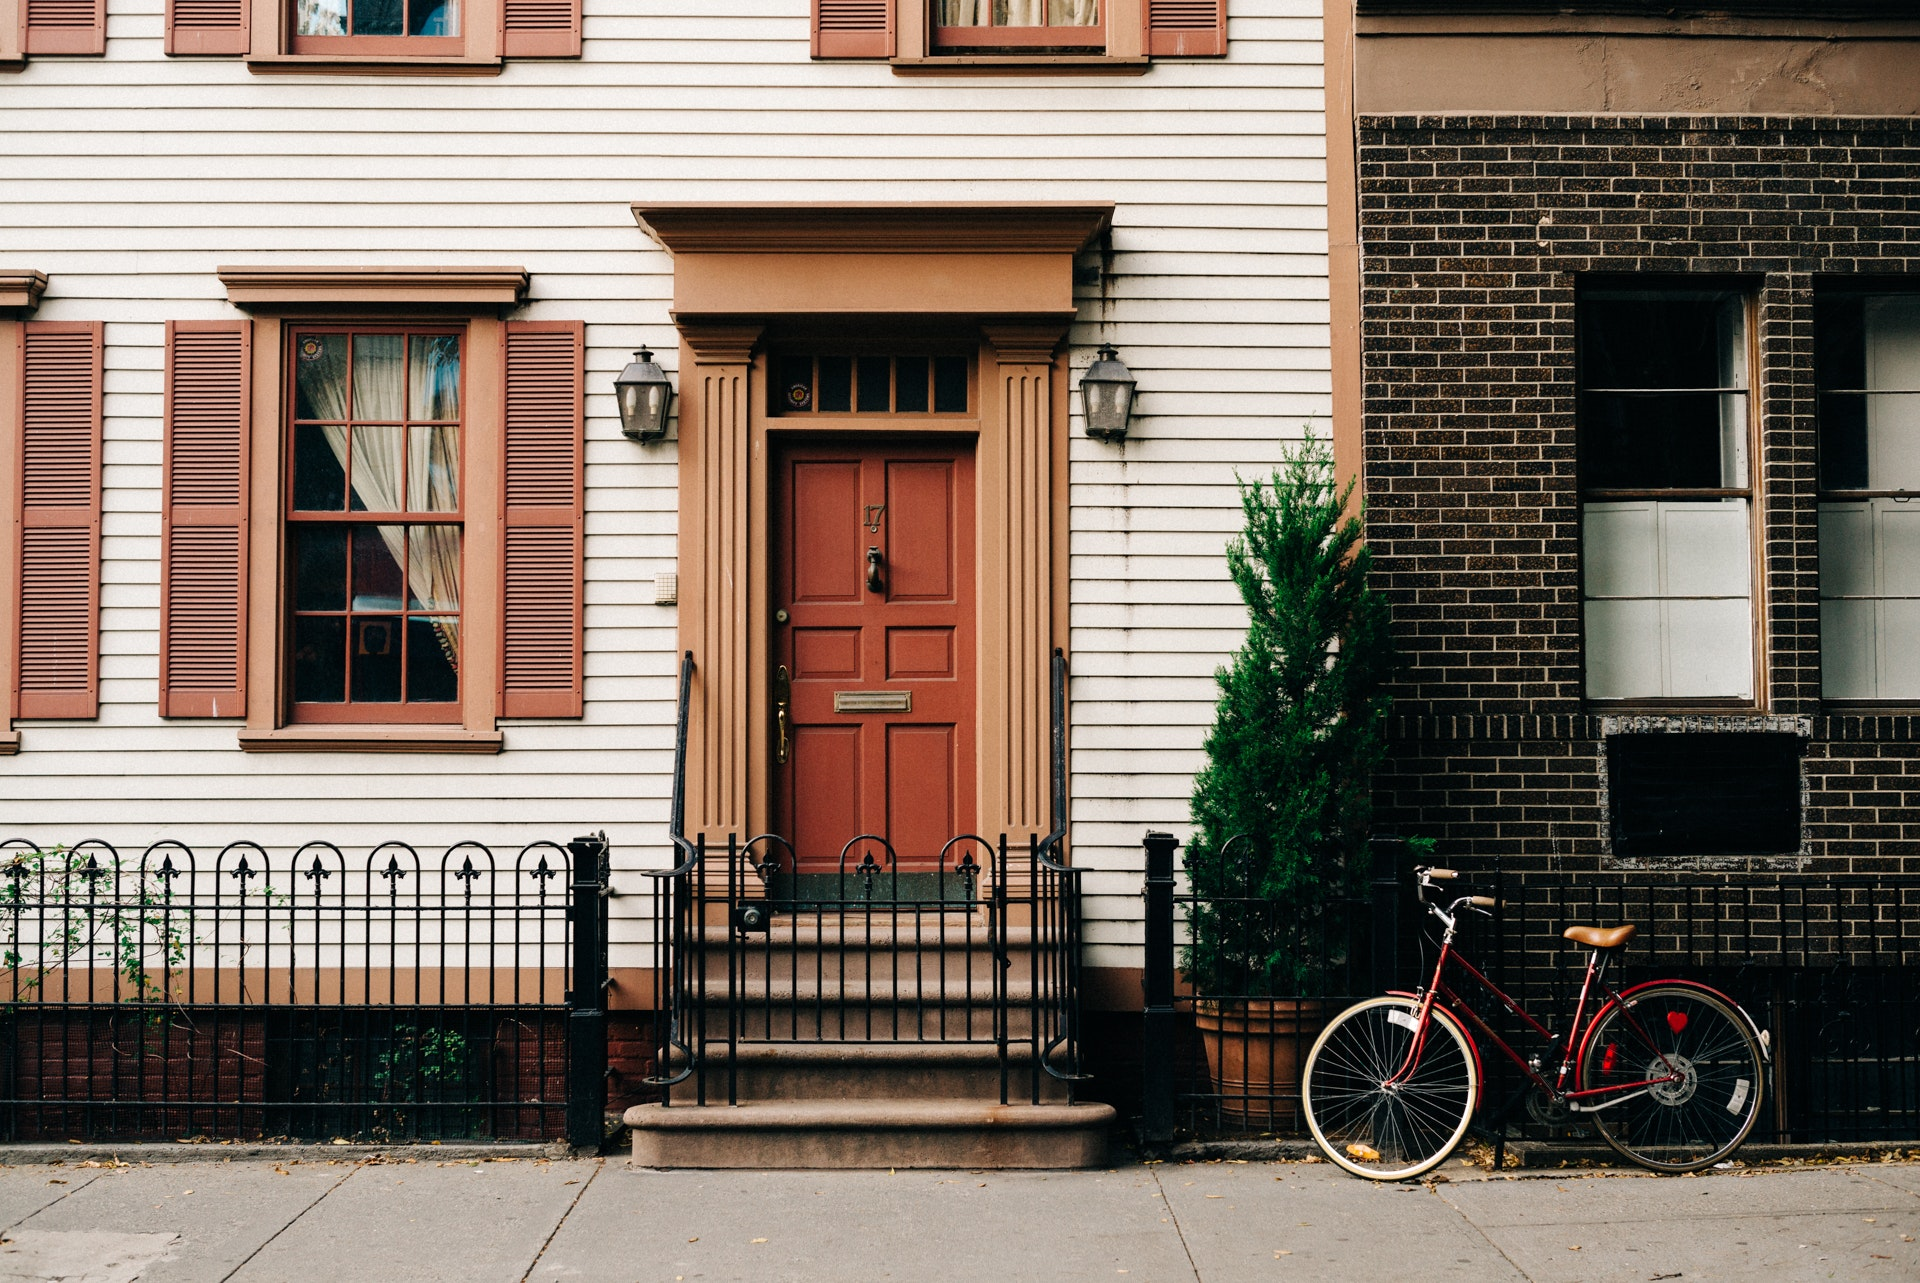 Picture of a house's porch, a bike parked outside.